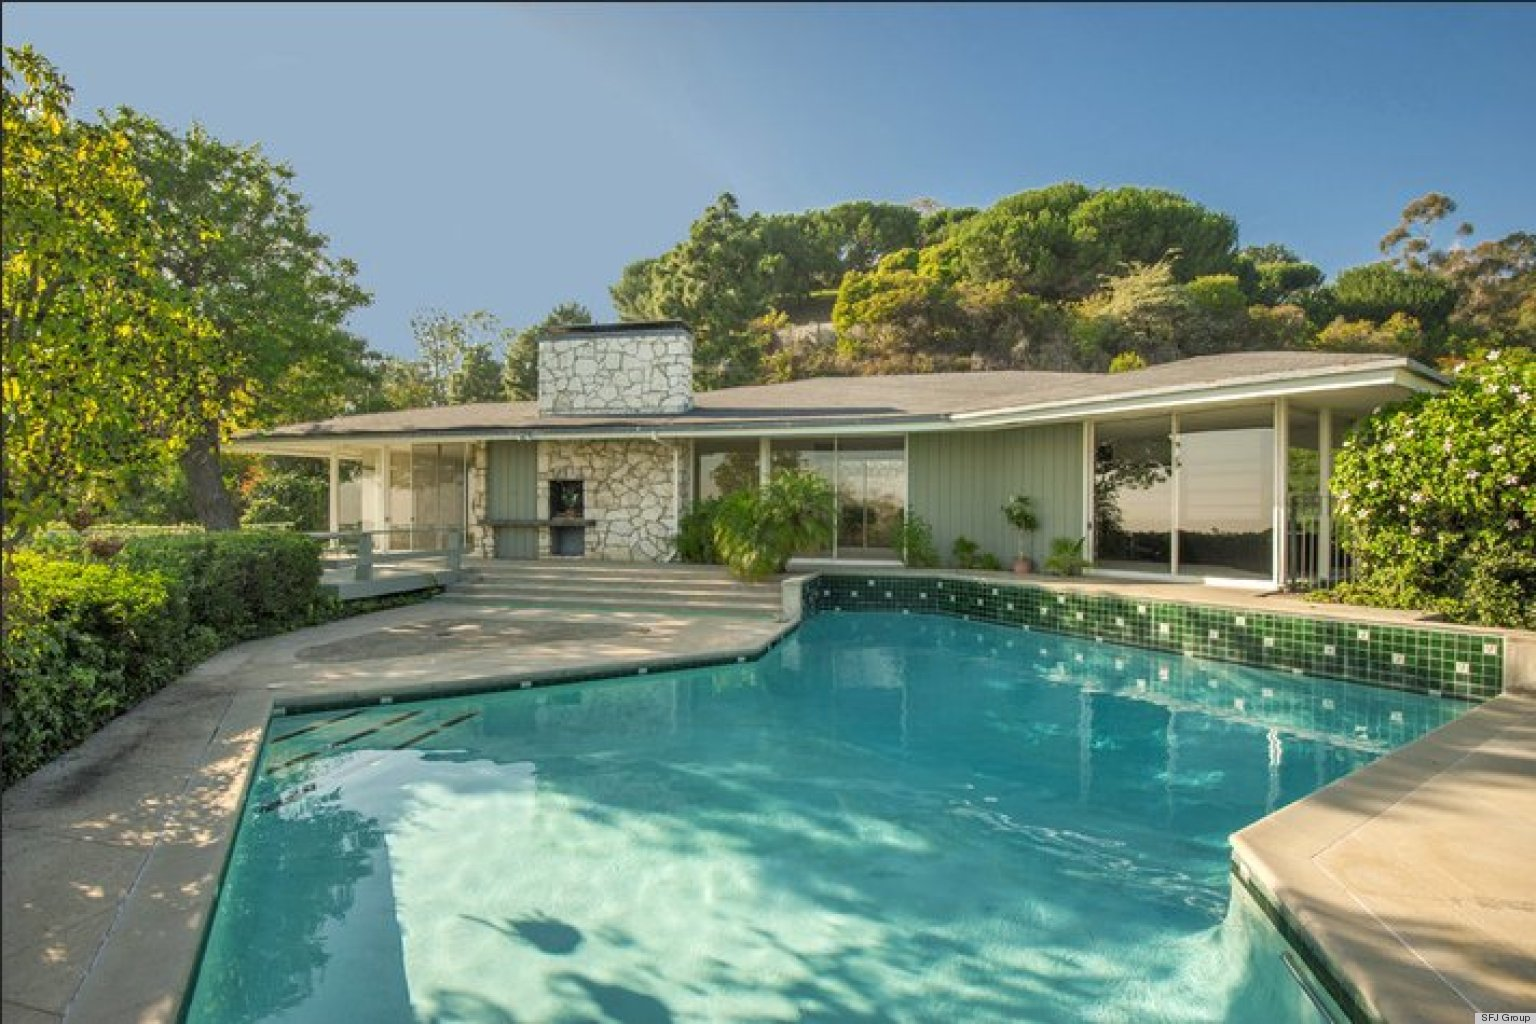 Ronald reagan 39 s former pacific palisades los angeles home for Houses for sale pacific palisades